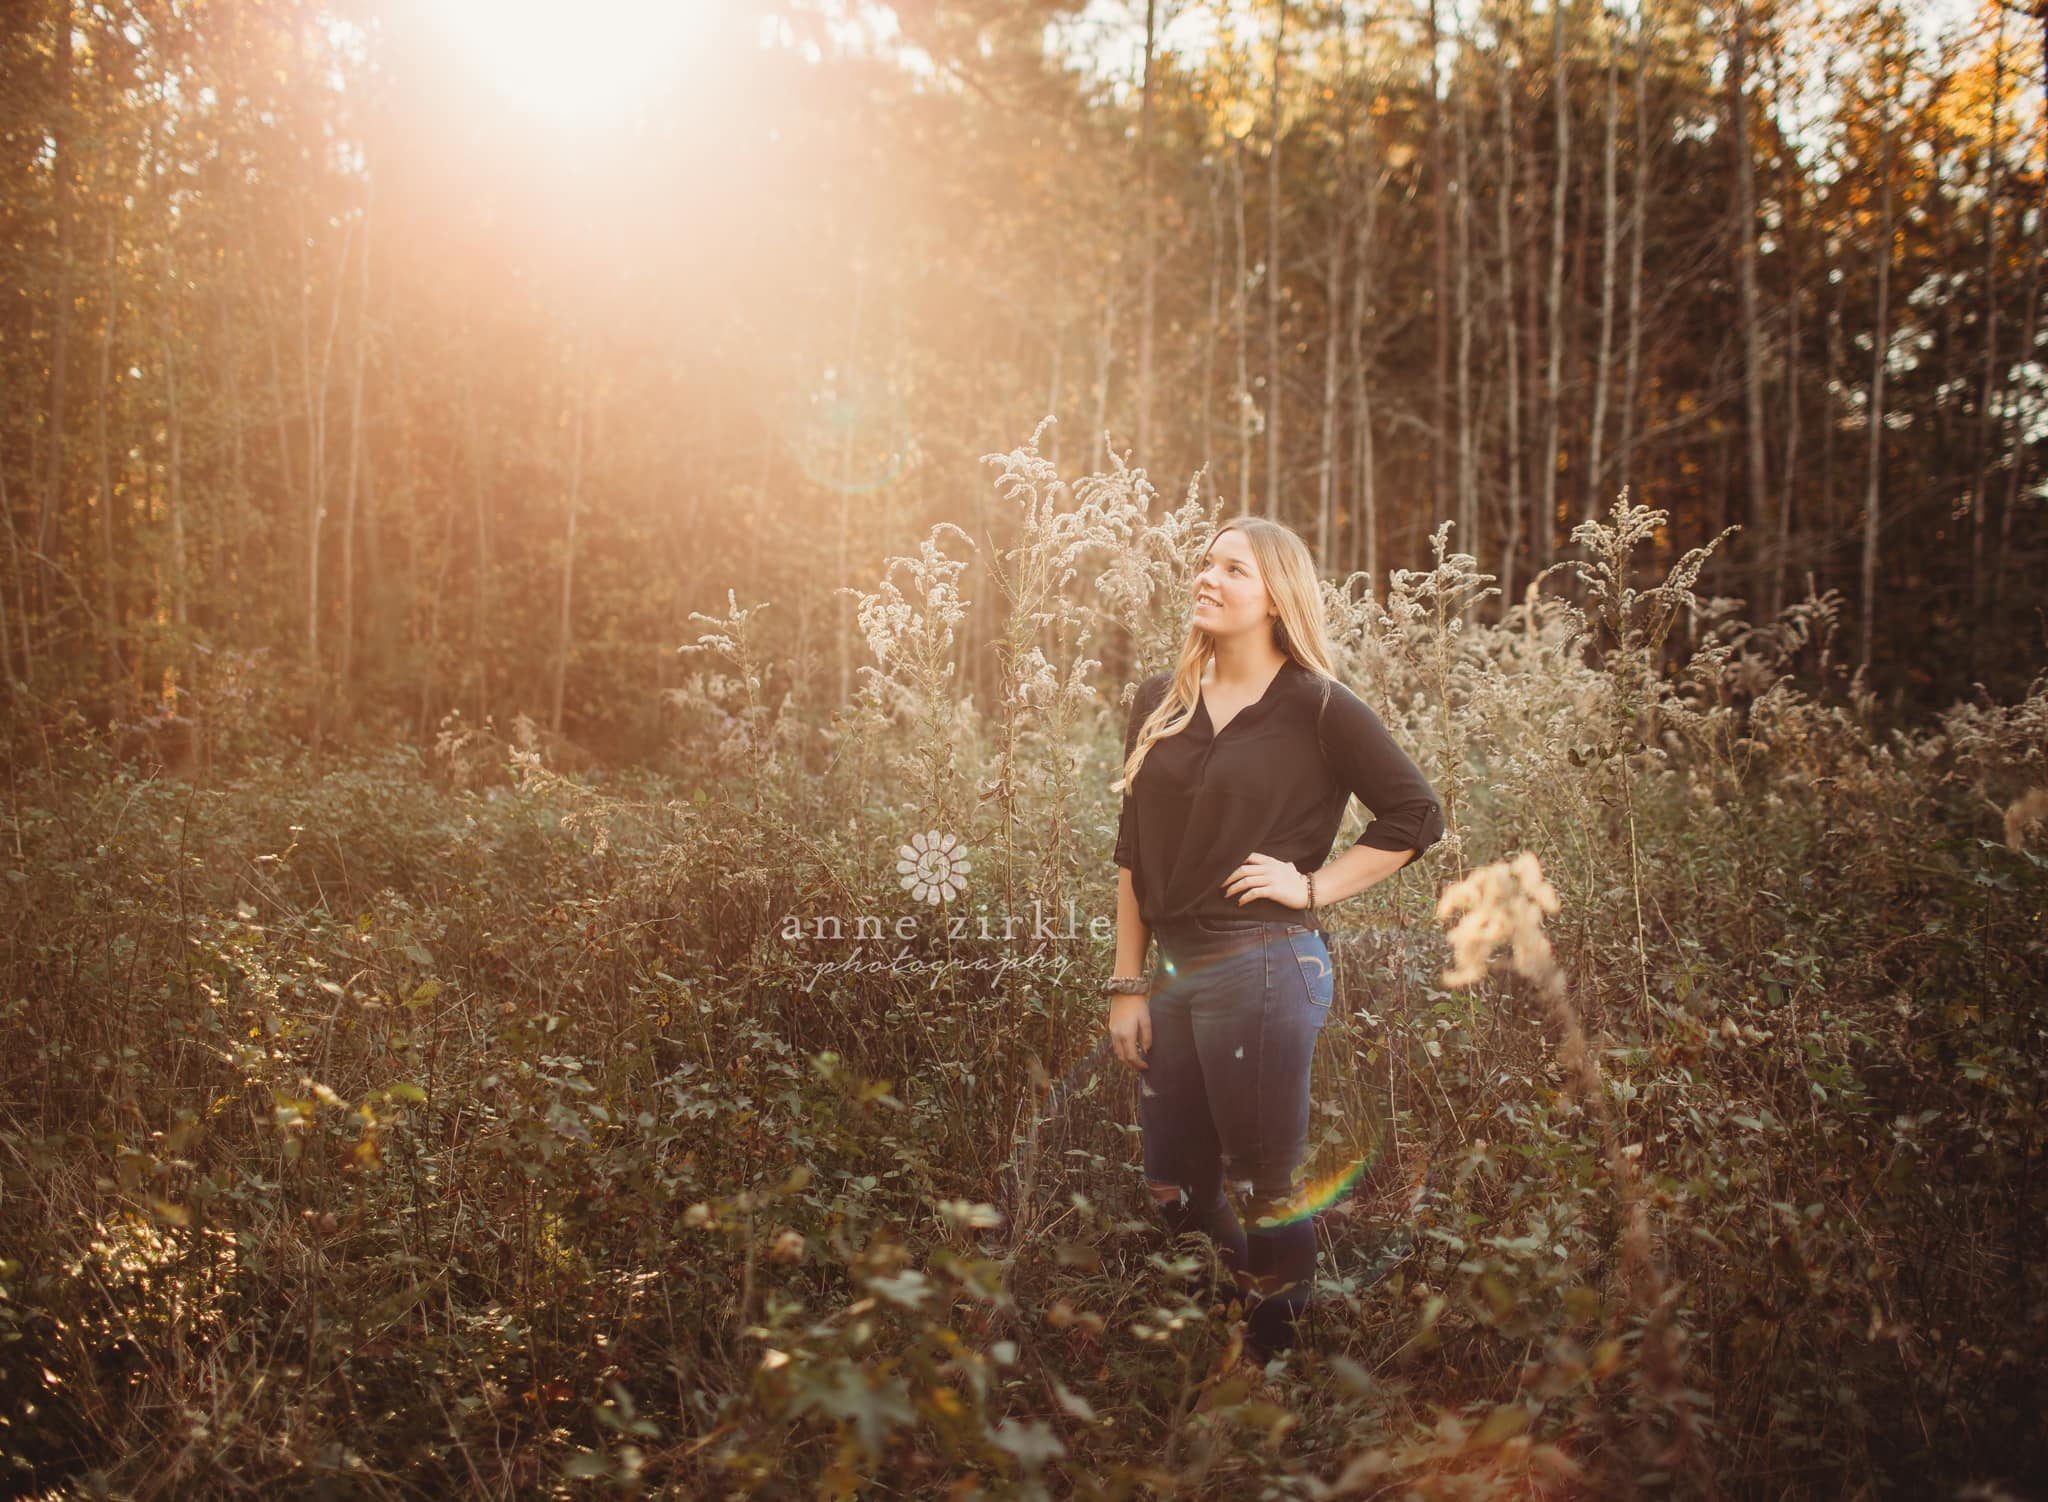 senior girl in fall wildflower field at golden hour #mooresville #northcarolina #davidson #lakenorman #southiredell #pinelakeprep #highschool #highschoolsenior #highschoolseniors #seniors